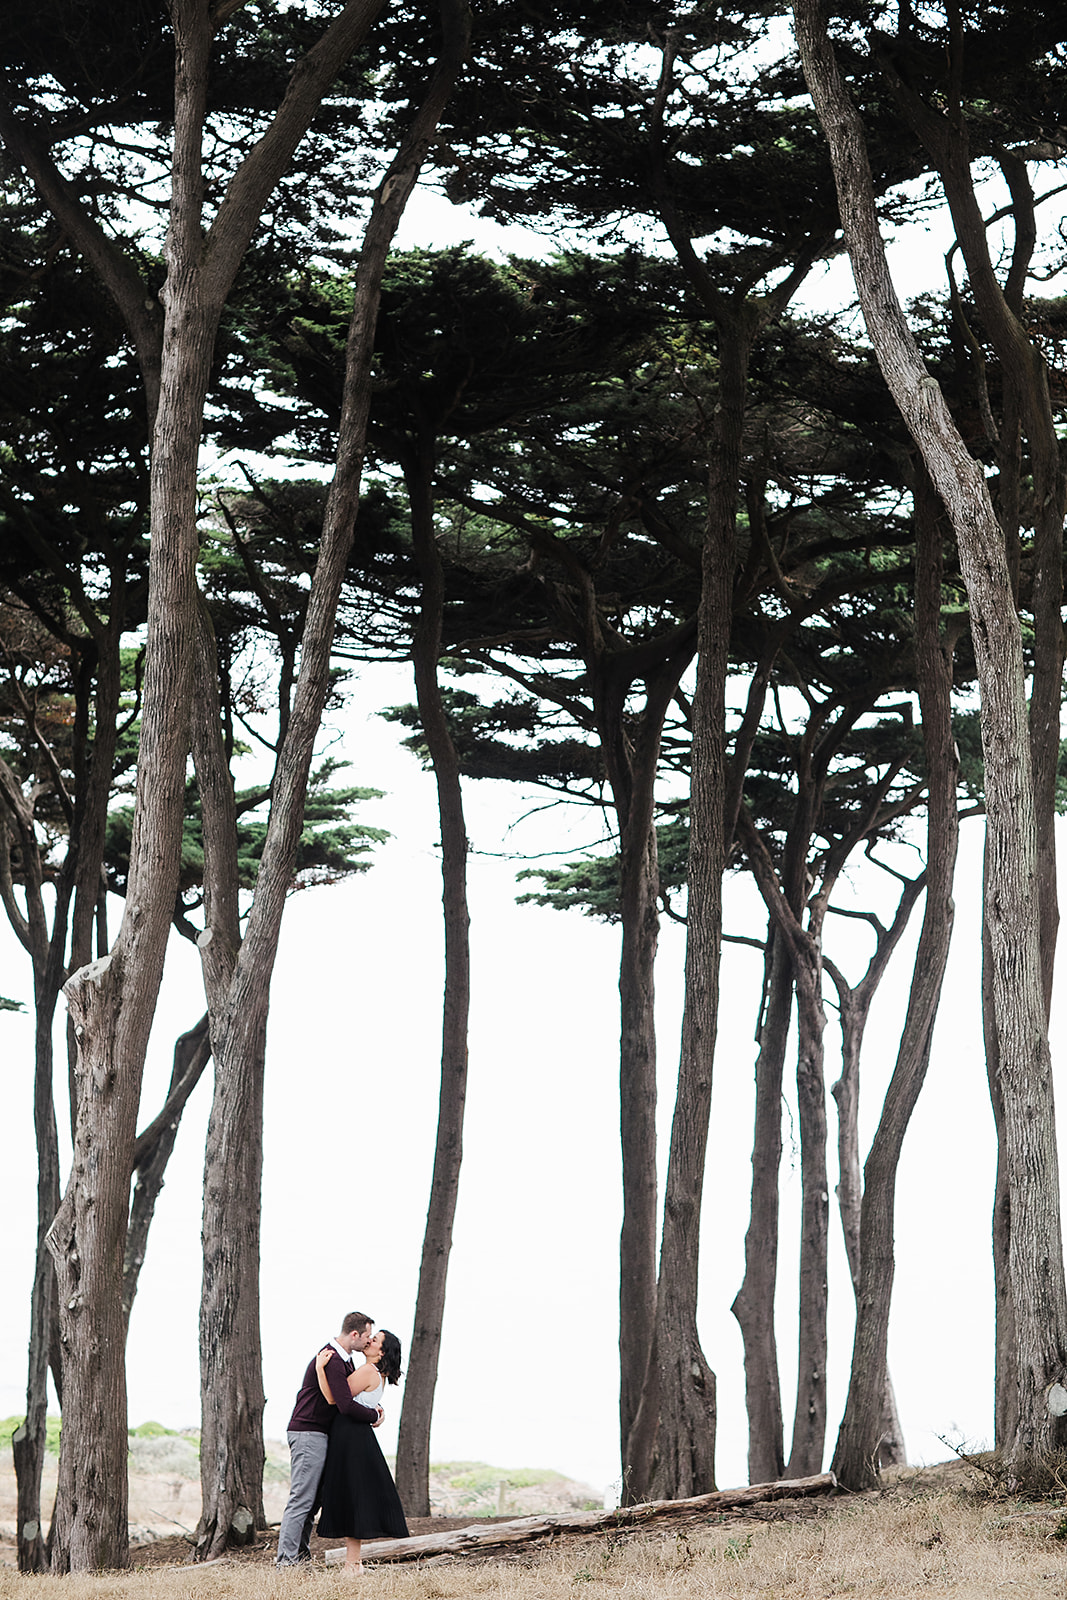 081318_A+J_Lands End Engagement_Buena Lane Photography_27.jpg